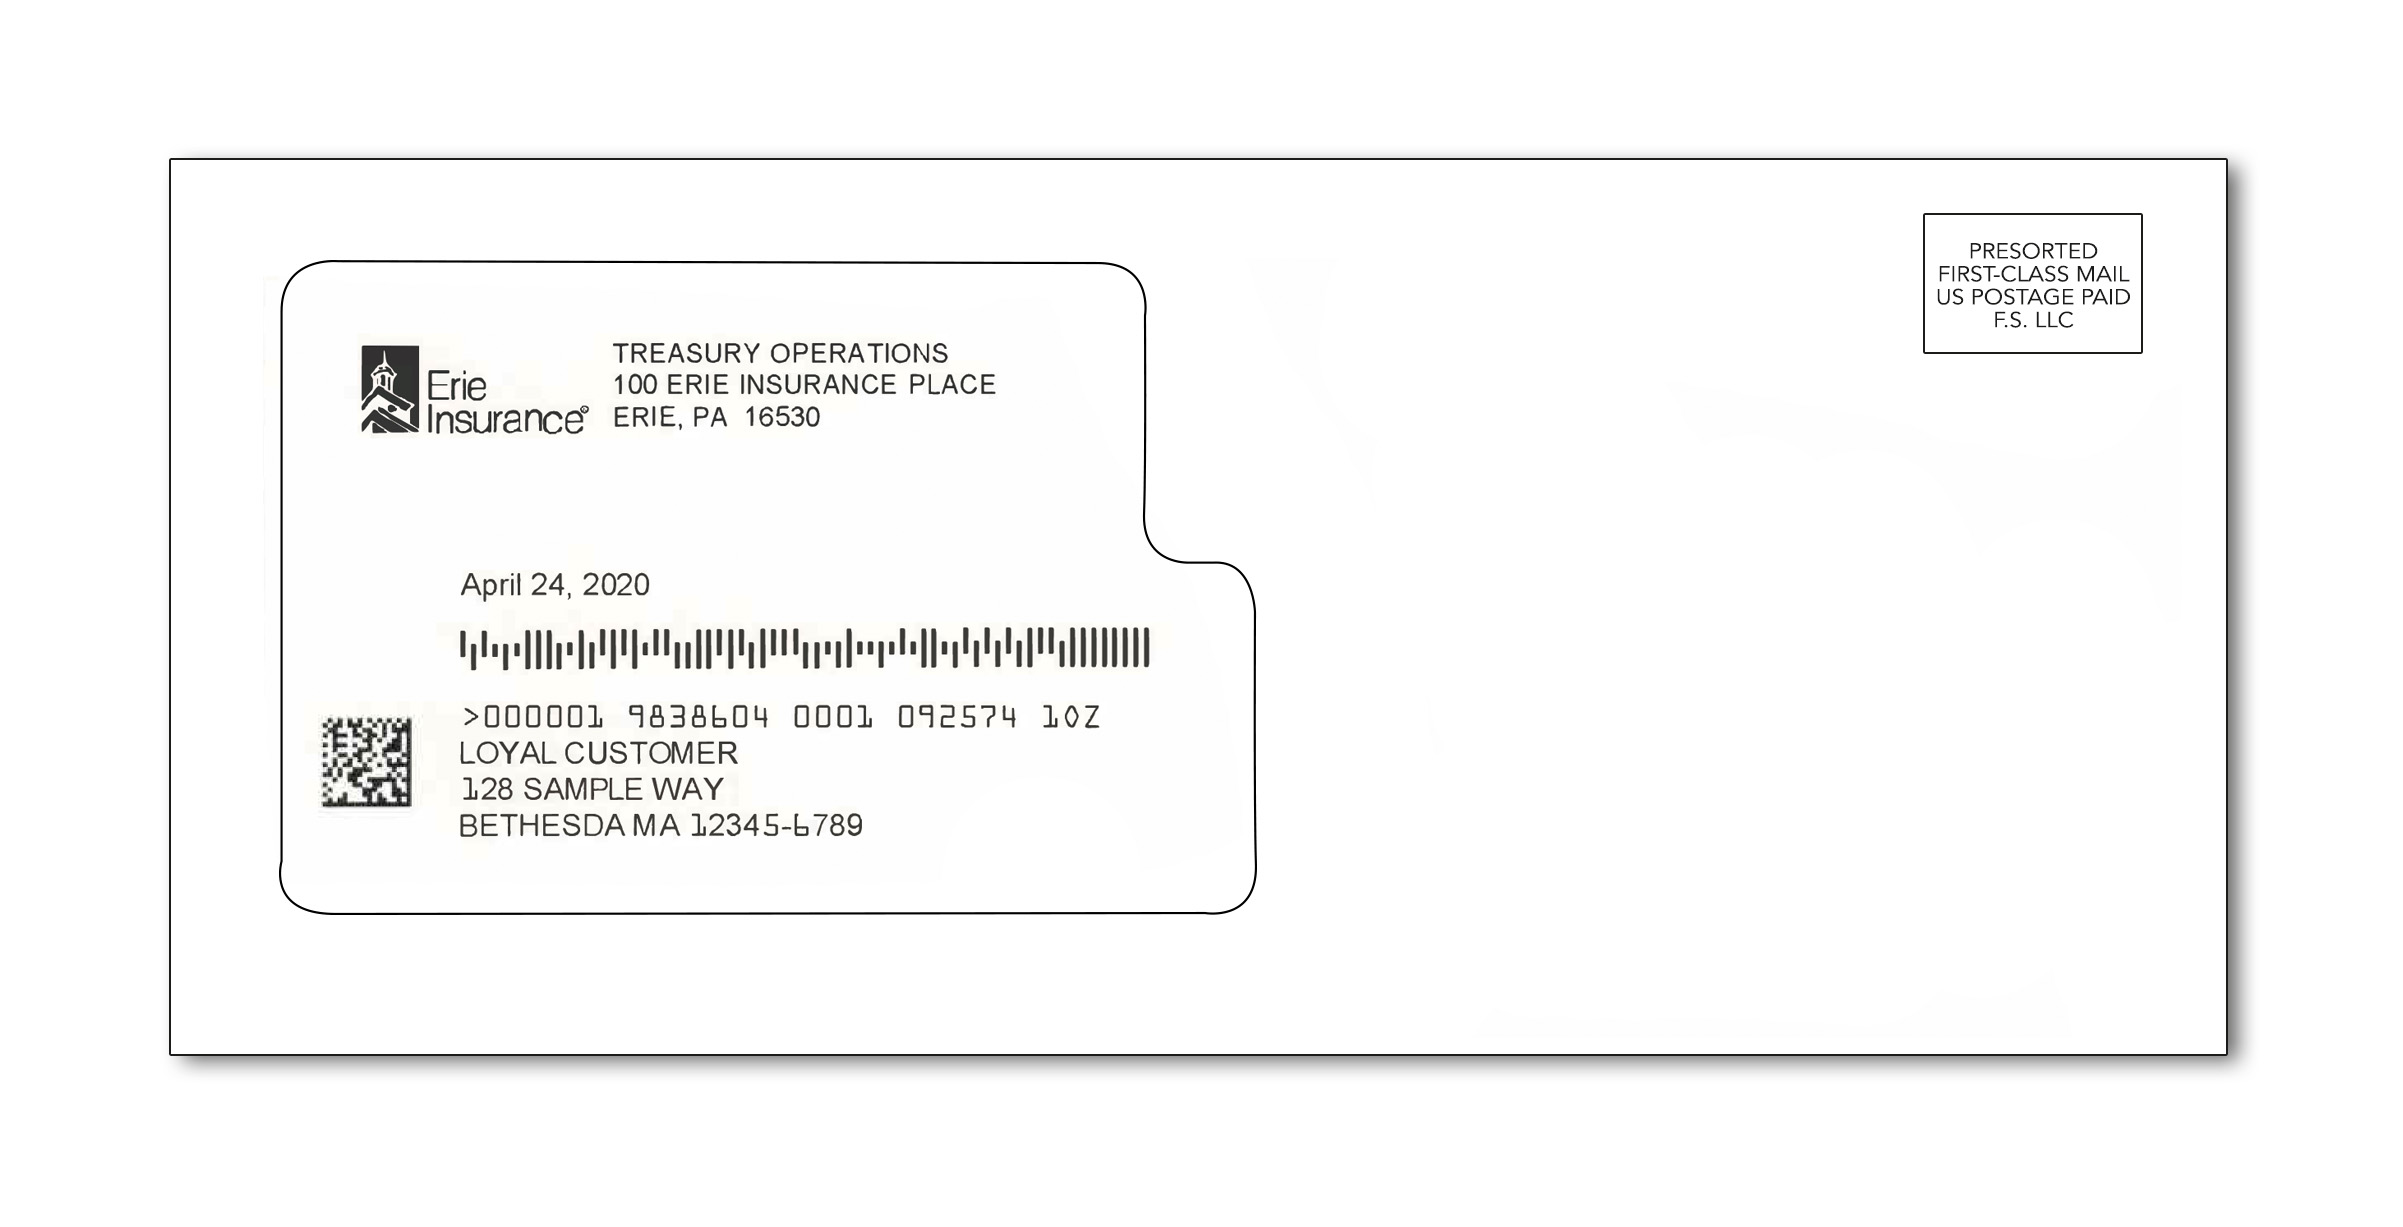 Sample of Erie Insurance dividend relief payment envelope from Erie Insurance Treasury Operations with address window on left half